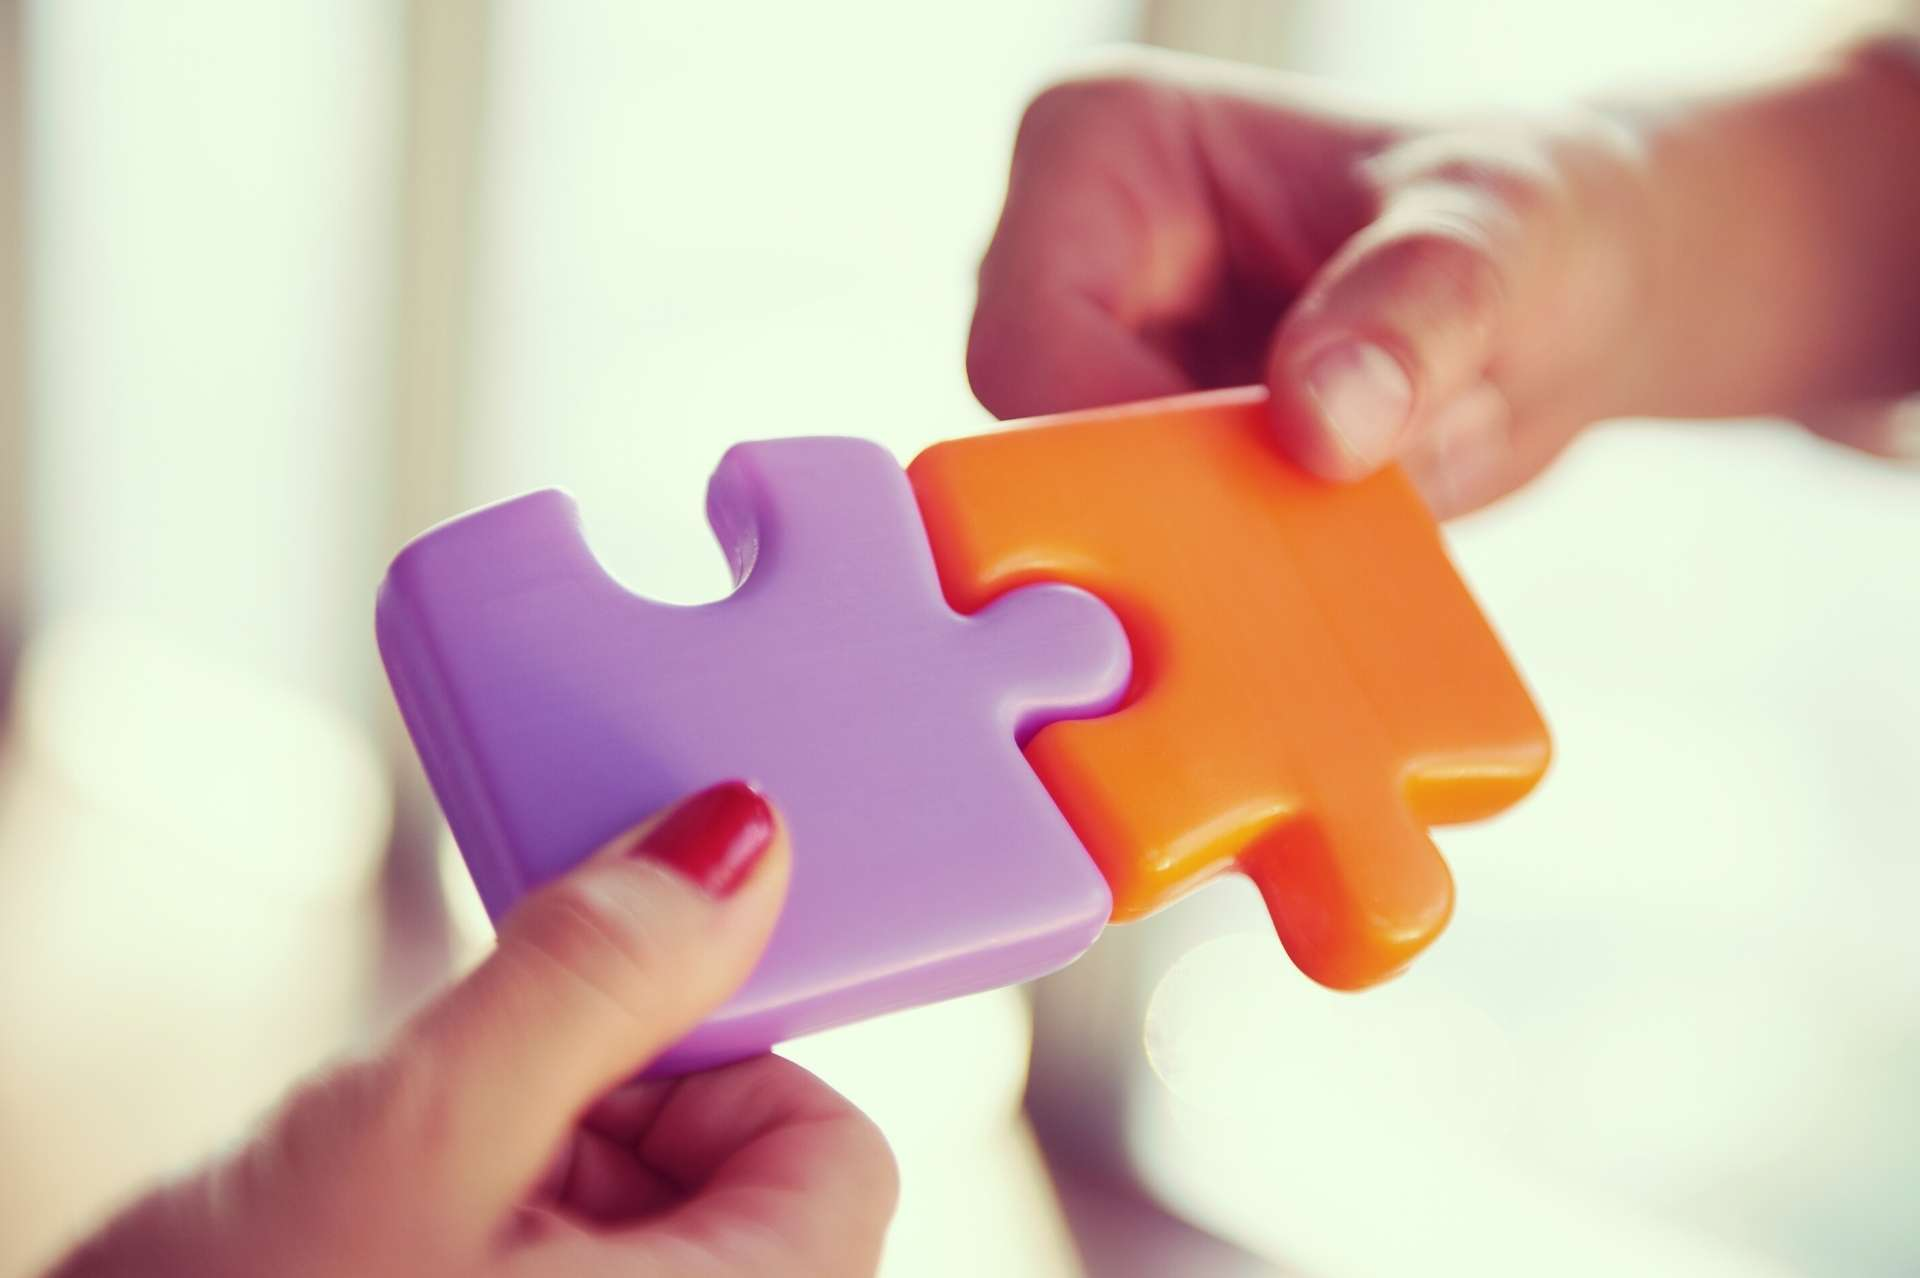 two hands holding a jigsaw puzzle piece